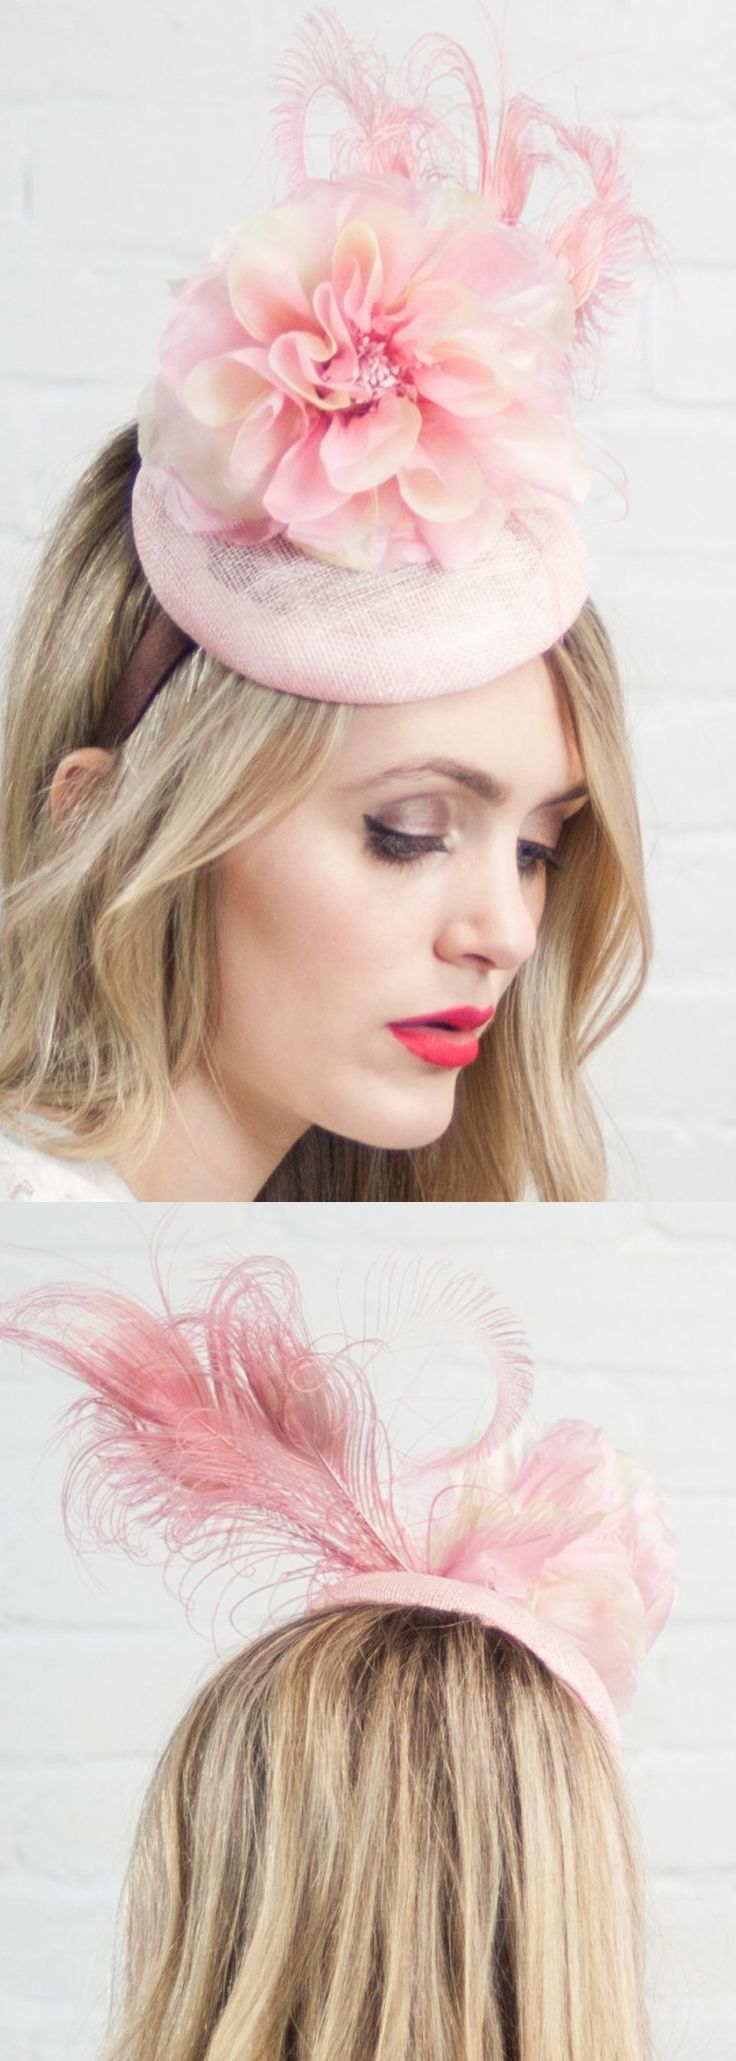 Floral Peacock Feather Kentucky Derby hat saucer fascinator a perfect headpiece for Kentucky Derby, Oaks, or Royal Ascot Race Day outfit, or fun hatinator for mother of the bride in popular pastel pink hues. Outfit inspiration ideas for spring wedding on day at the races outfits. #weddings #weddingplanning #motherofthebride #kentuckyderbyfashion #royalascot #derbydayoutfits #kentuckyderbyparty #motherofthegroom #springwedding #weddingideas #weddinginspiration #affiliatelink #fashion…